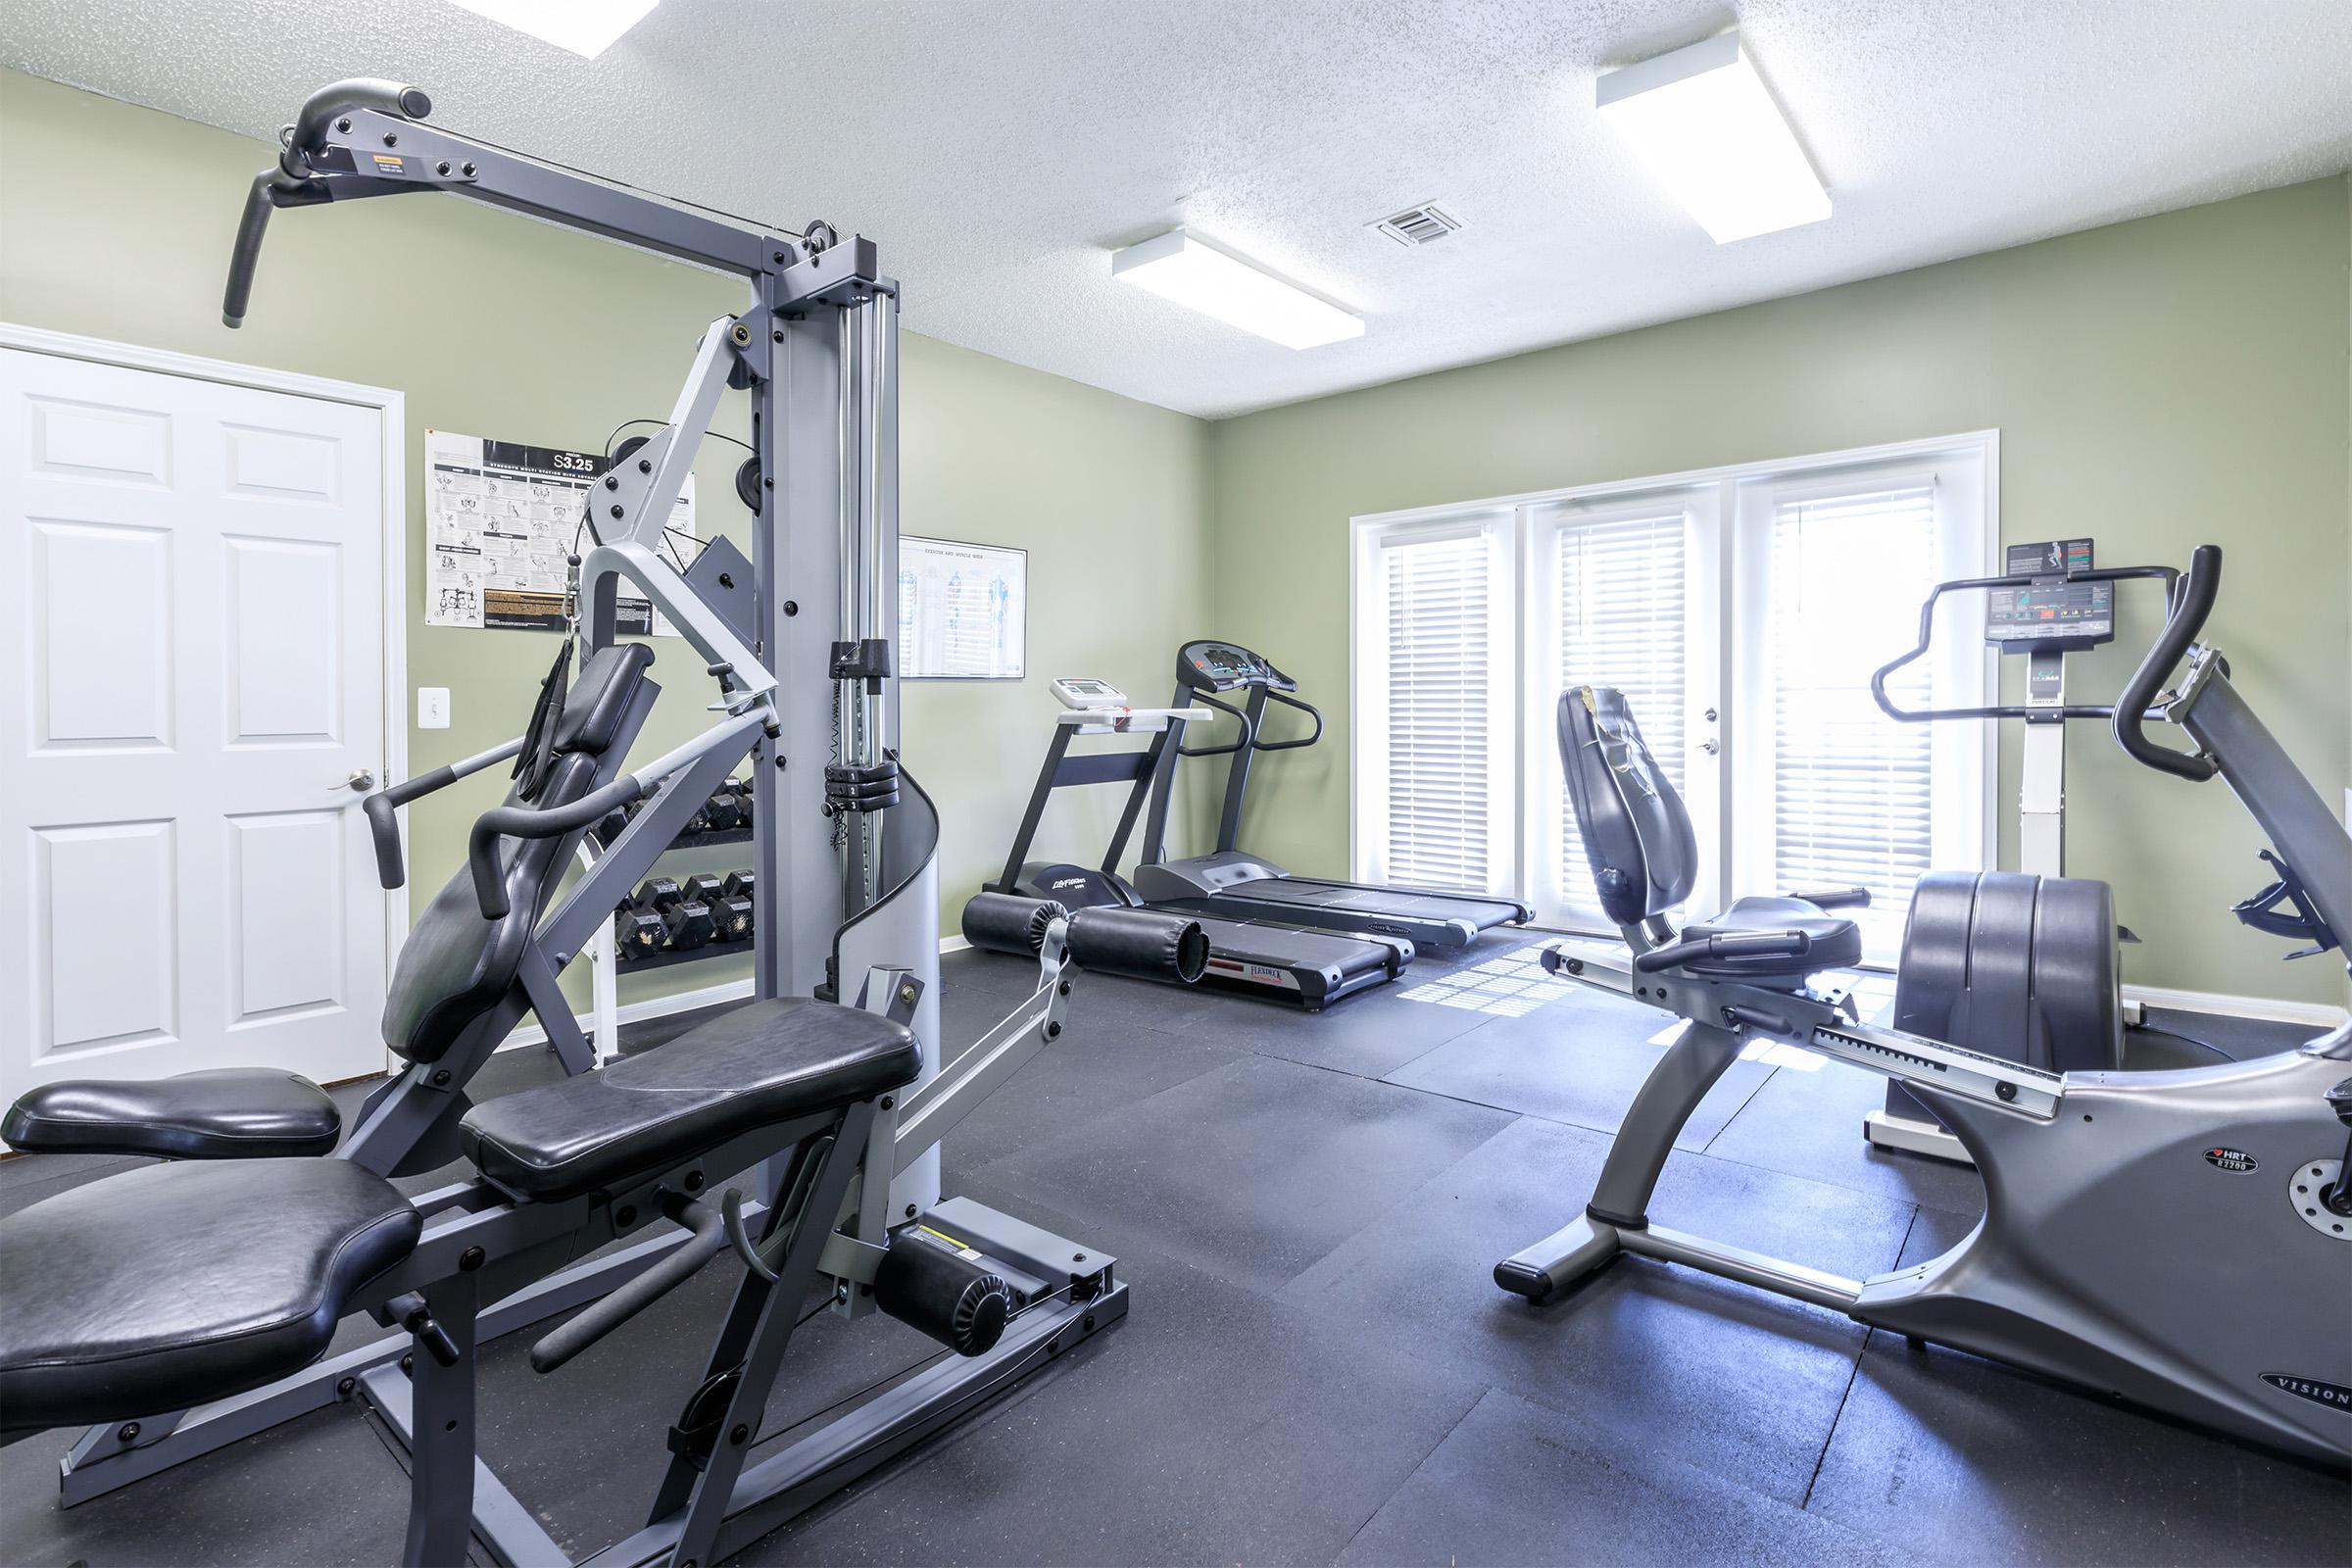 Staying fit is easy here at Graymere in Columbia, Tennessee